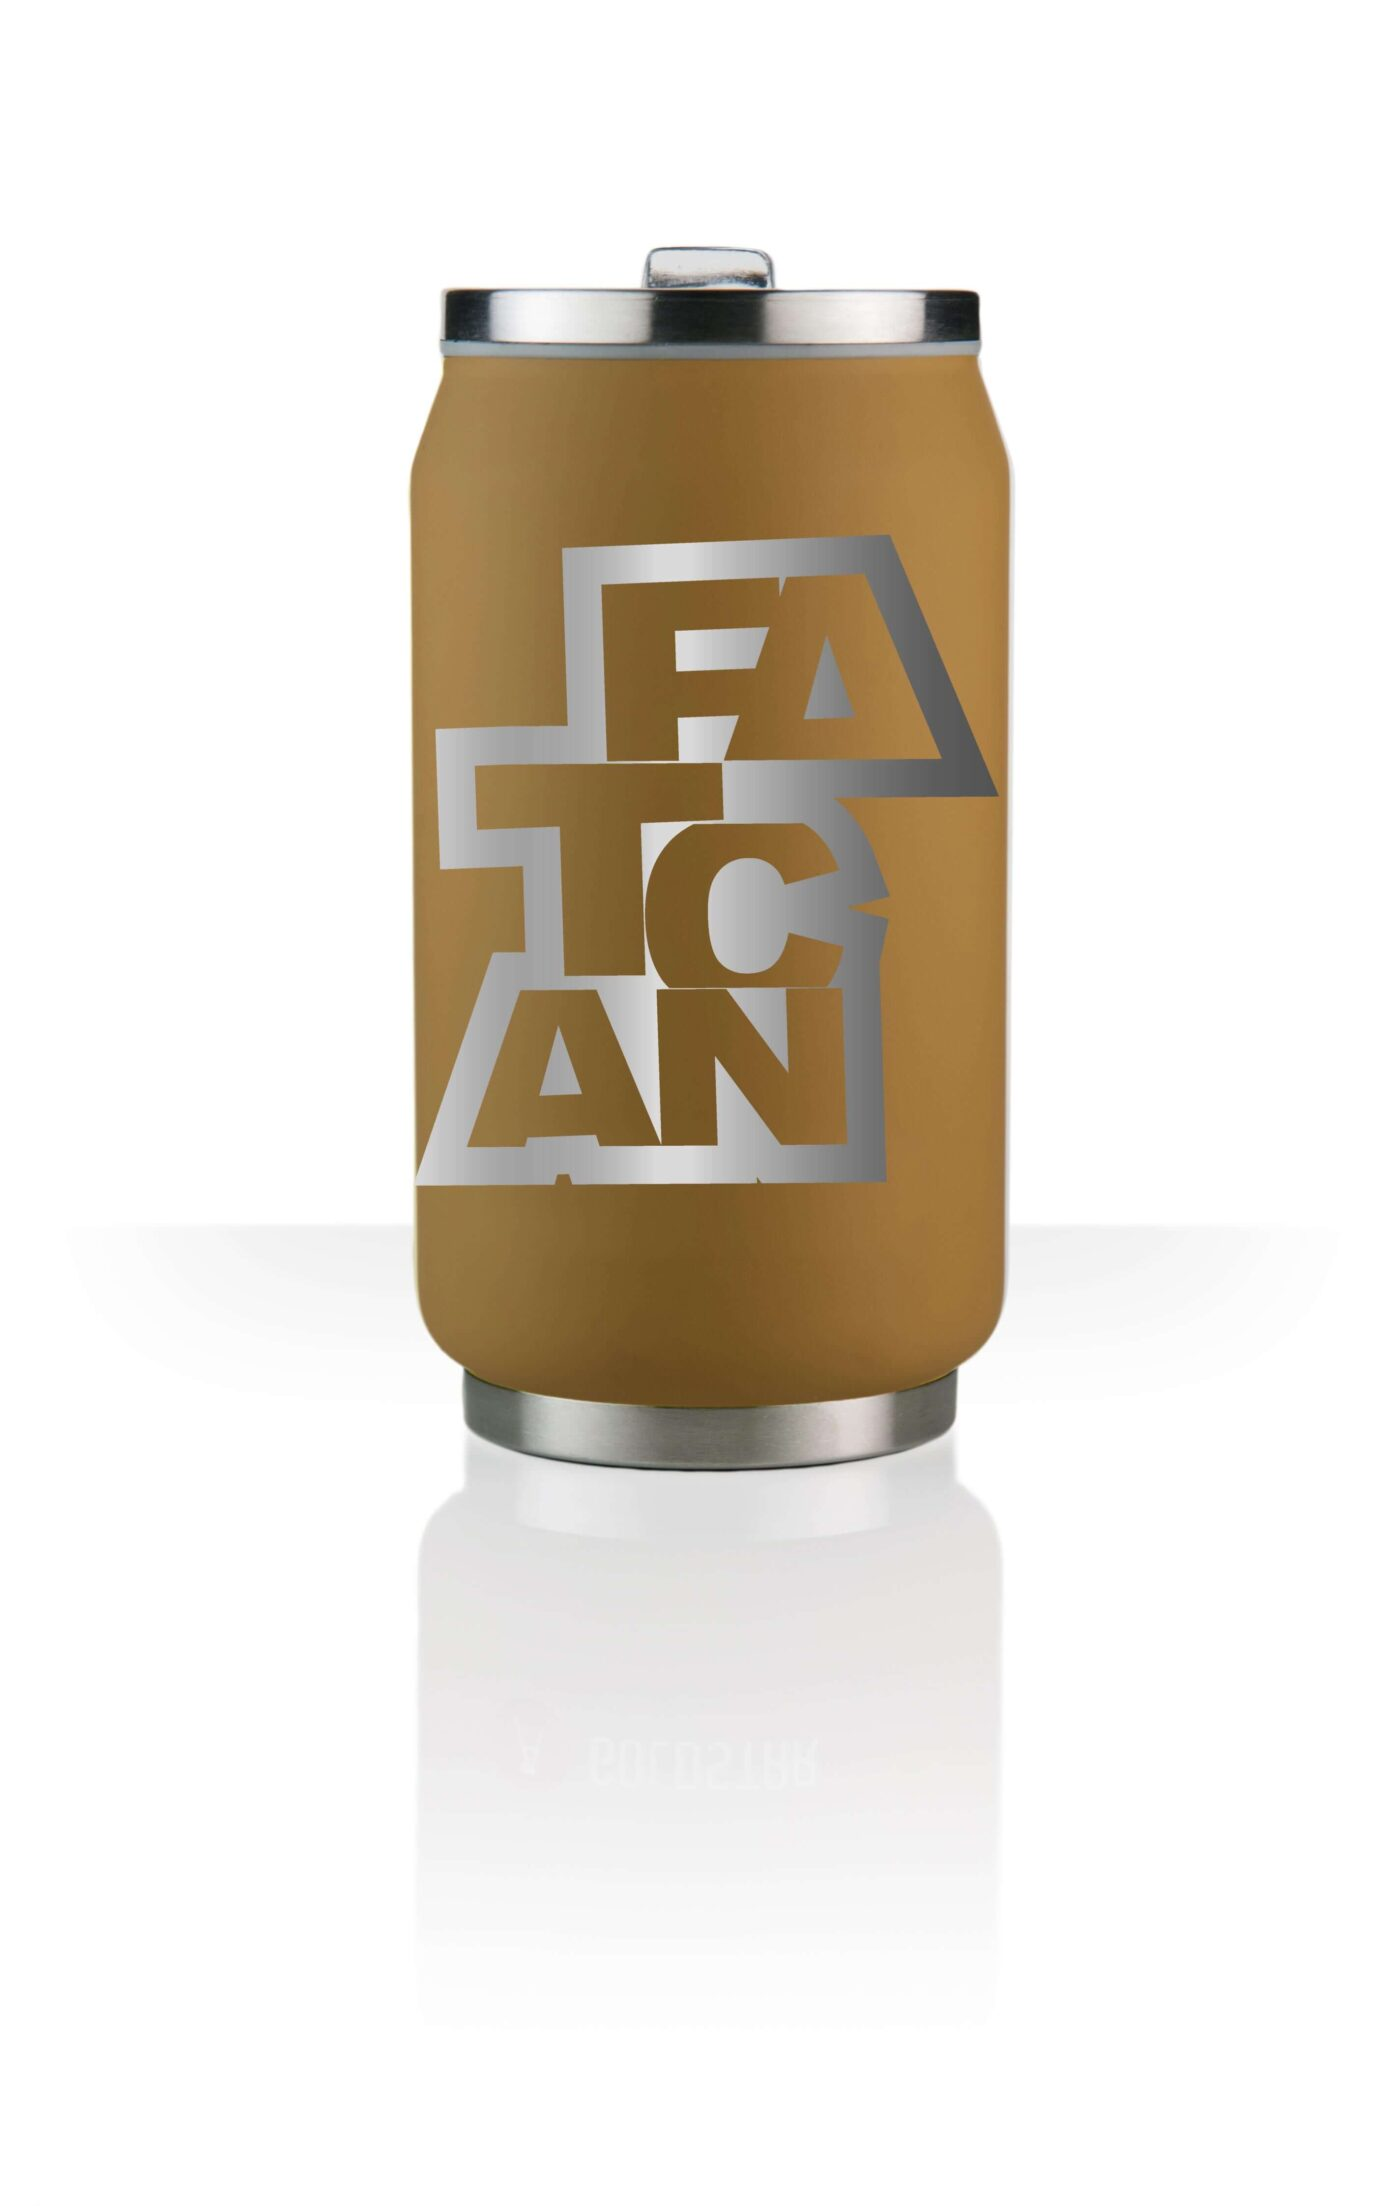 FATCAN_goldsta_matt_025